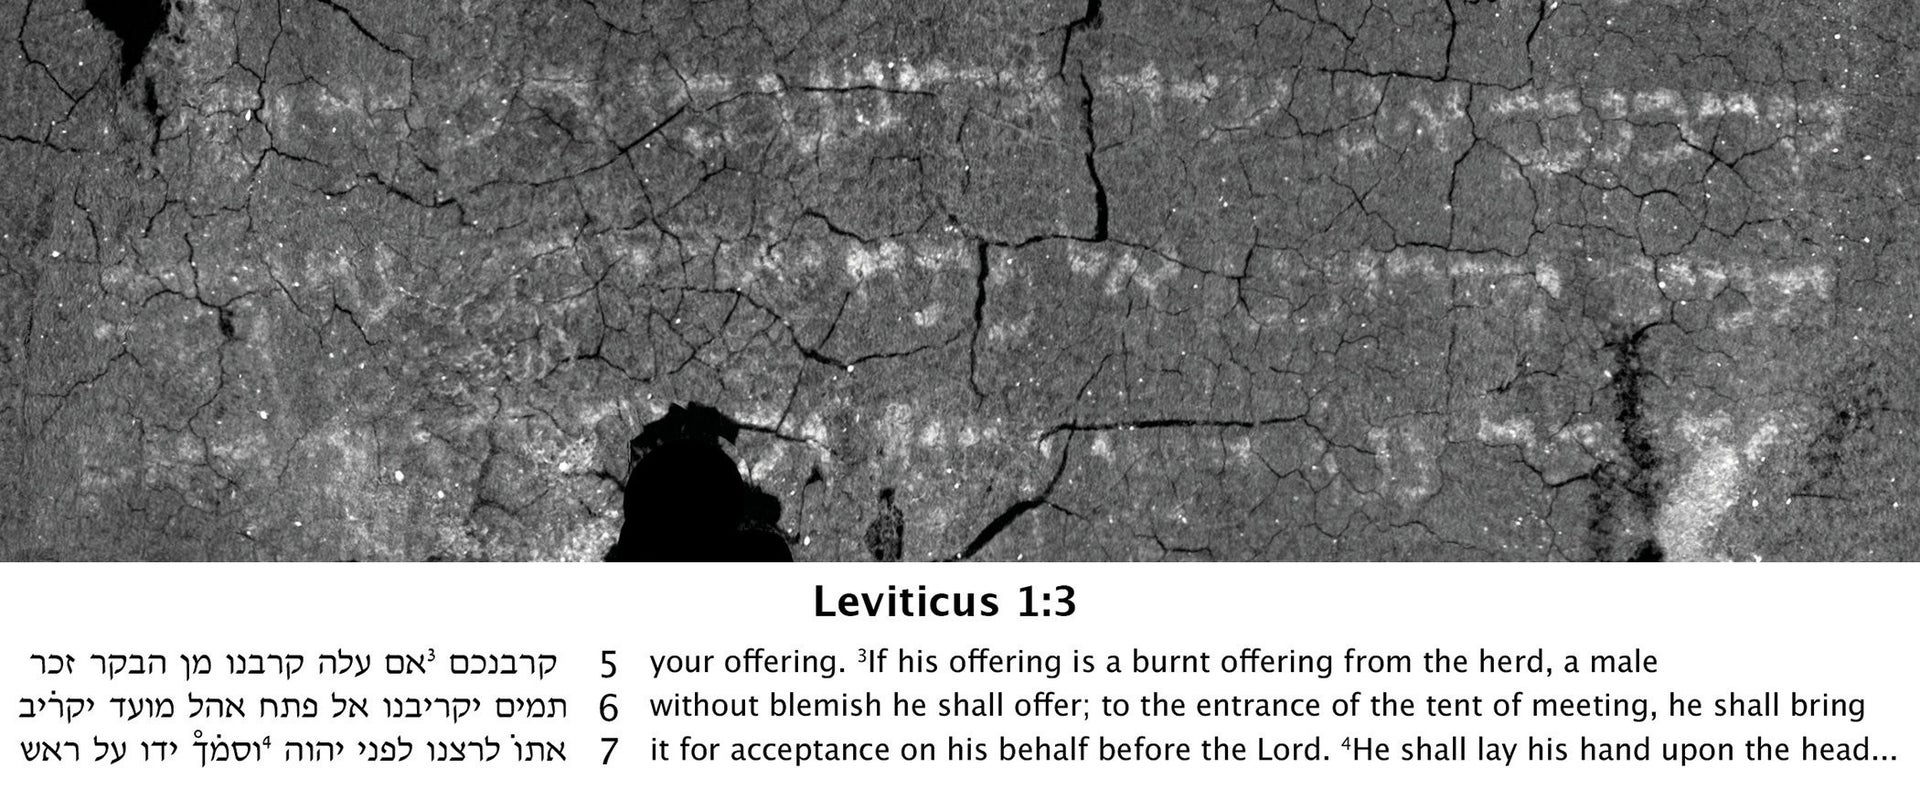 The virtually unwrapped Ein Gedi scroll containing the first two chapters of the Book of Leviticus